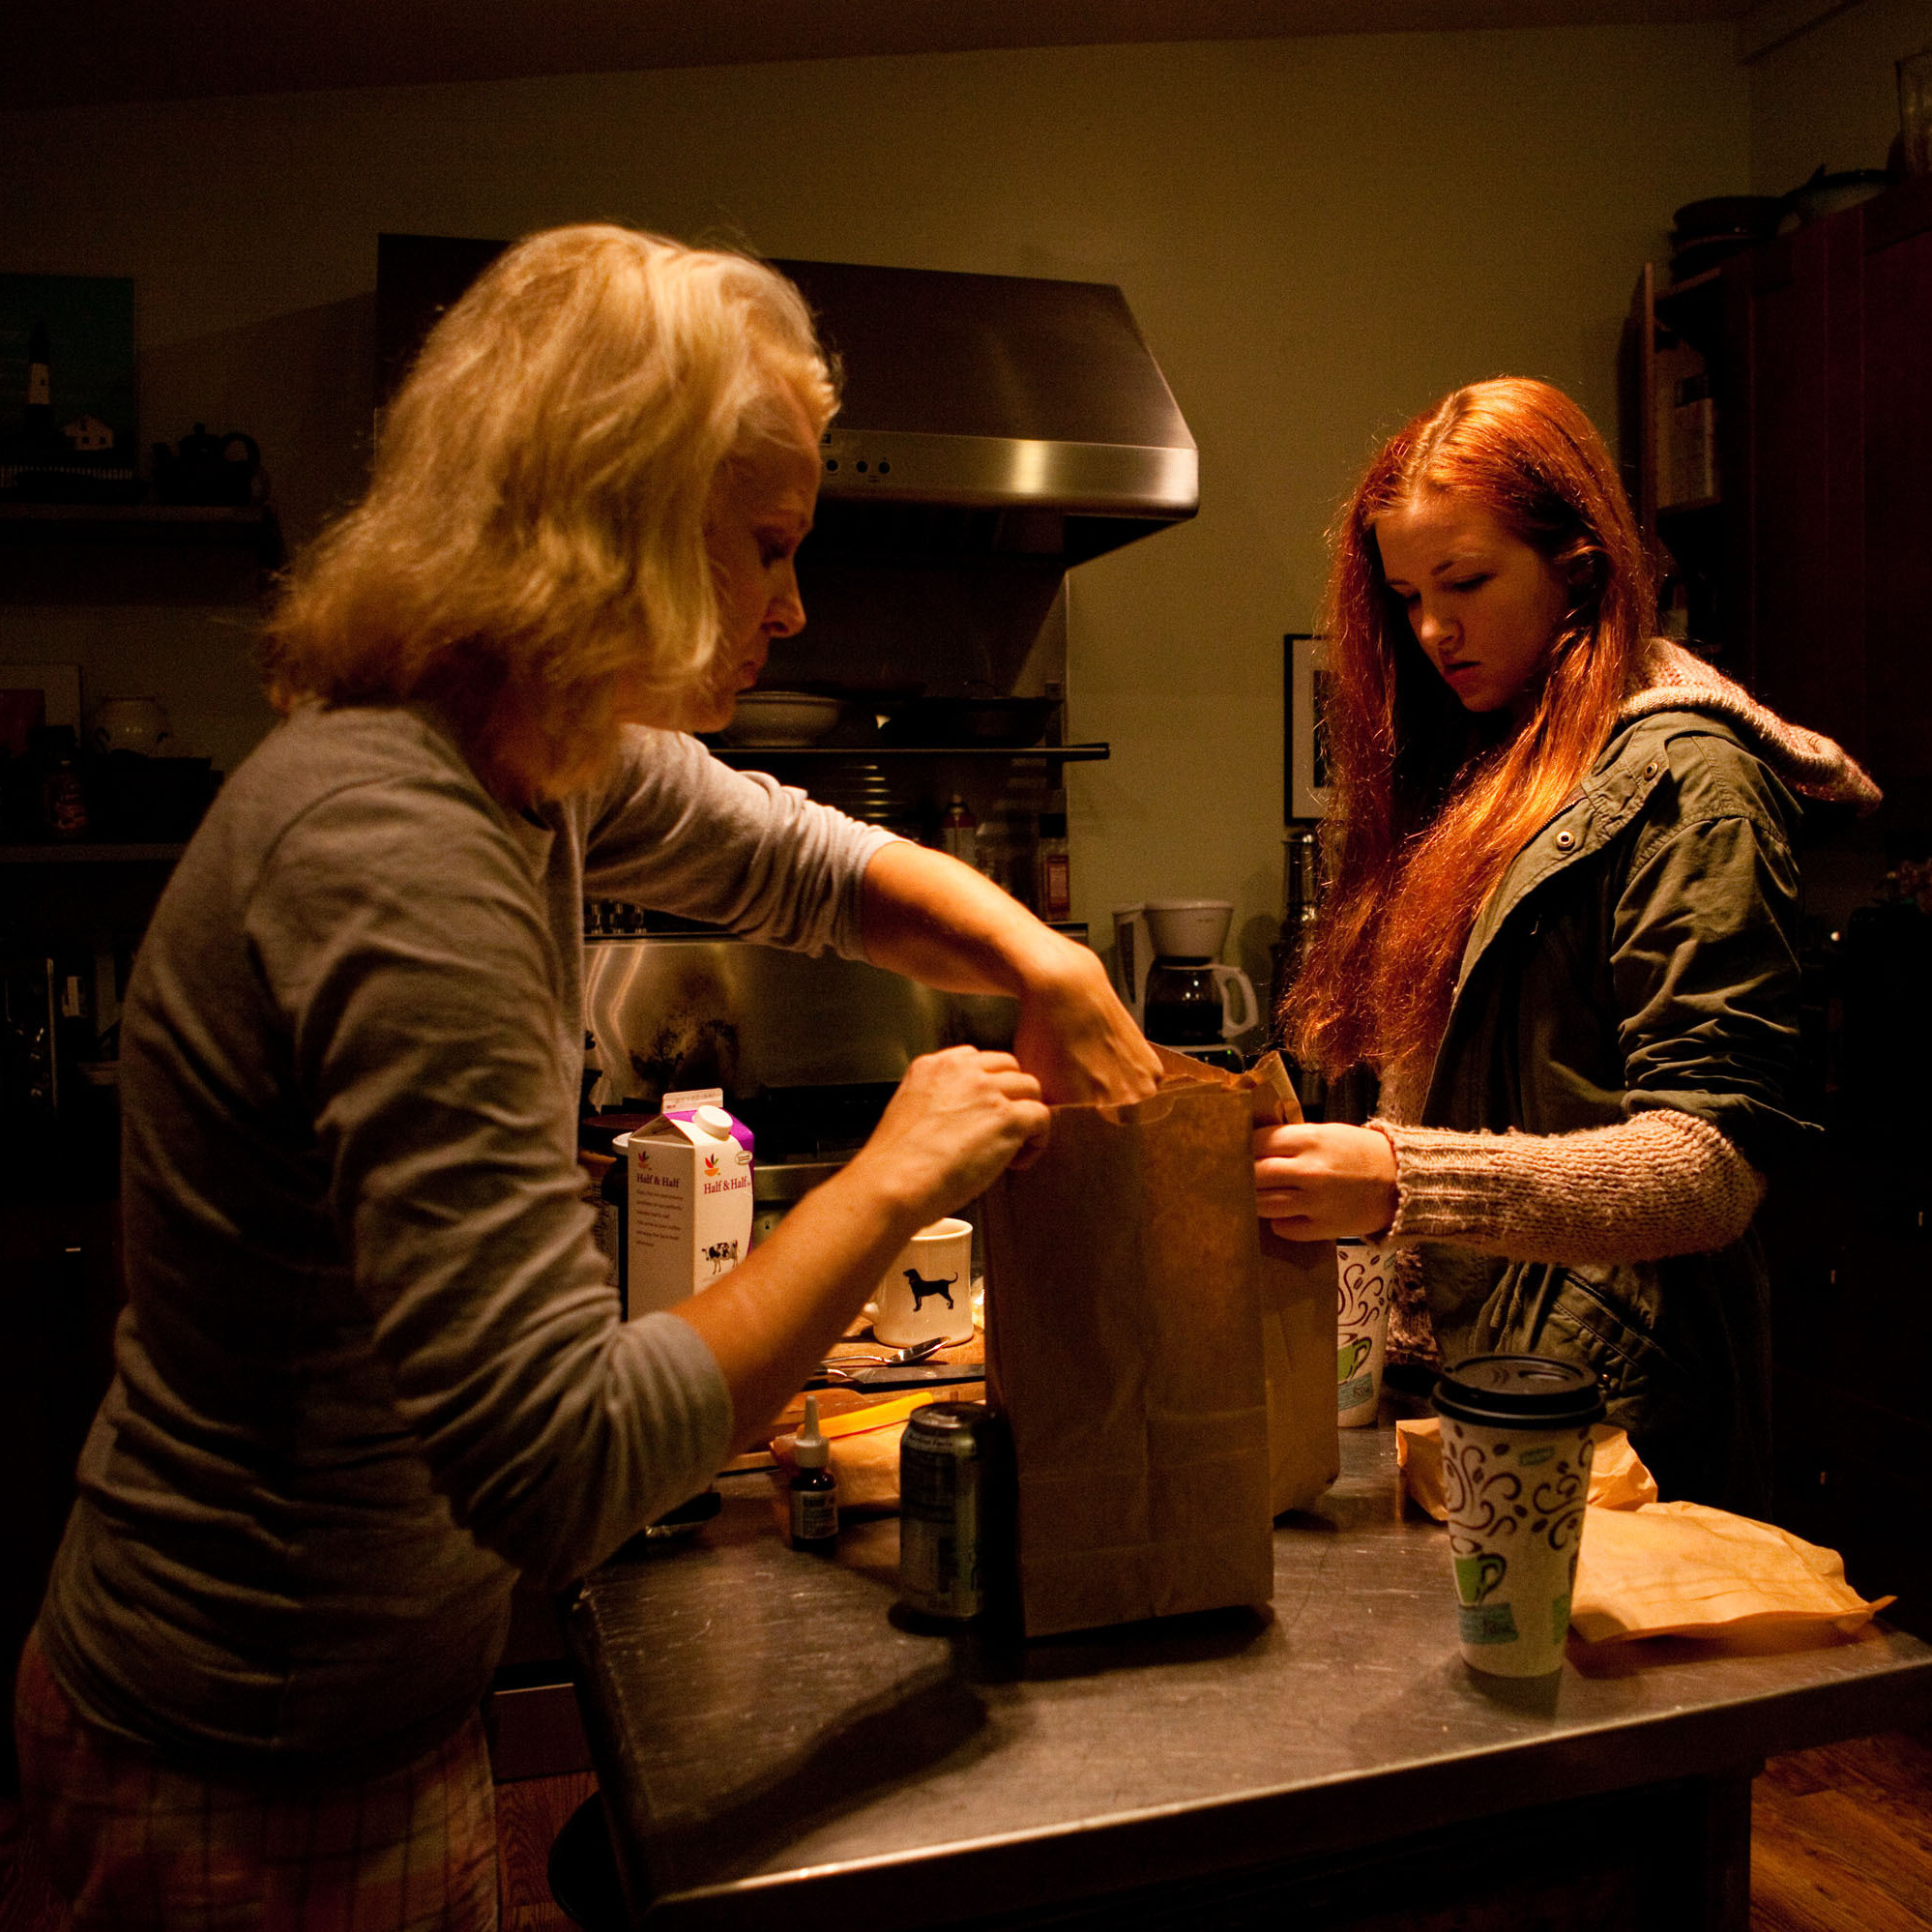 Cristina Sevin packs lunches for her two teenagers in Annapolis, Md., on Nov. 22.